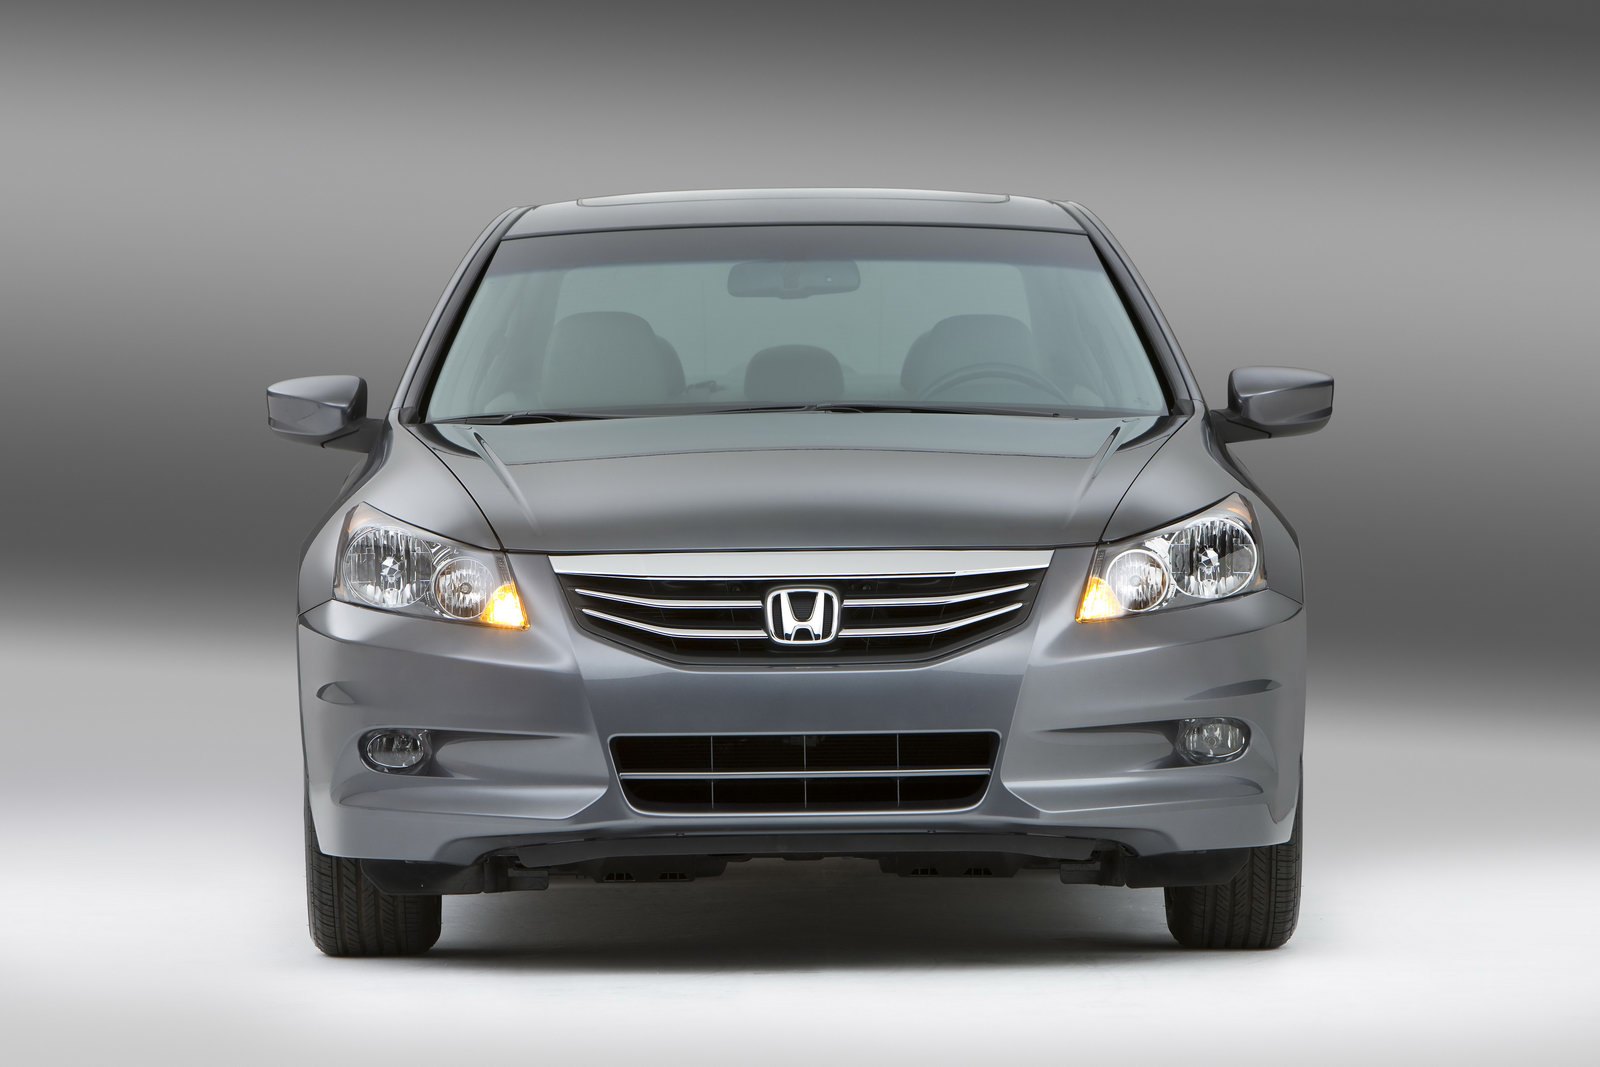 2011 Honda Accord Sedan And Coupe Facelift First Photos